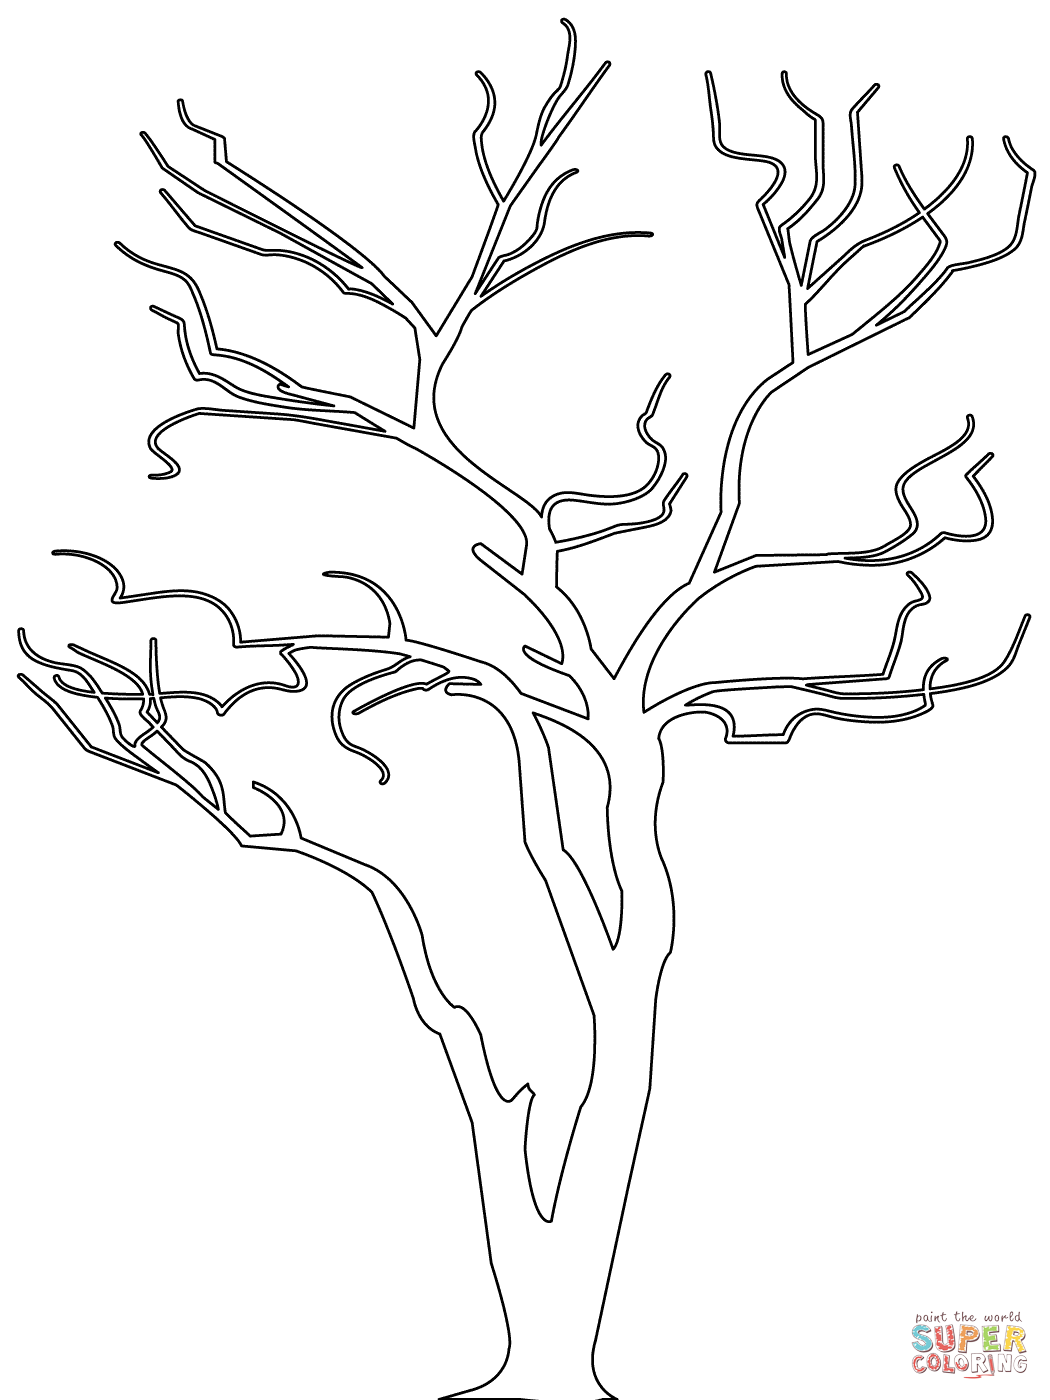 Bare Tree Outline Coloring Page